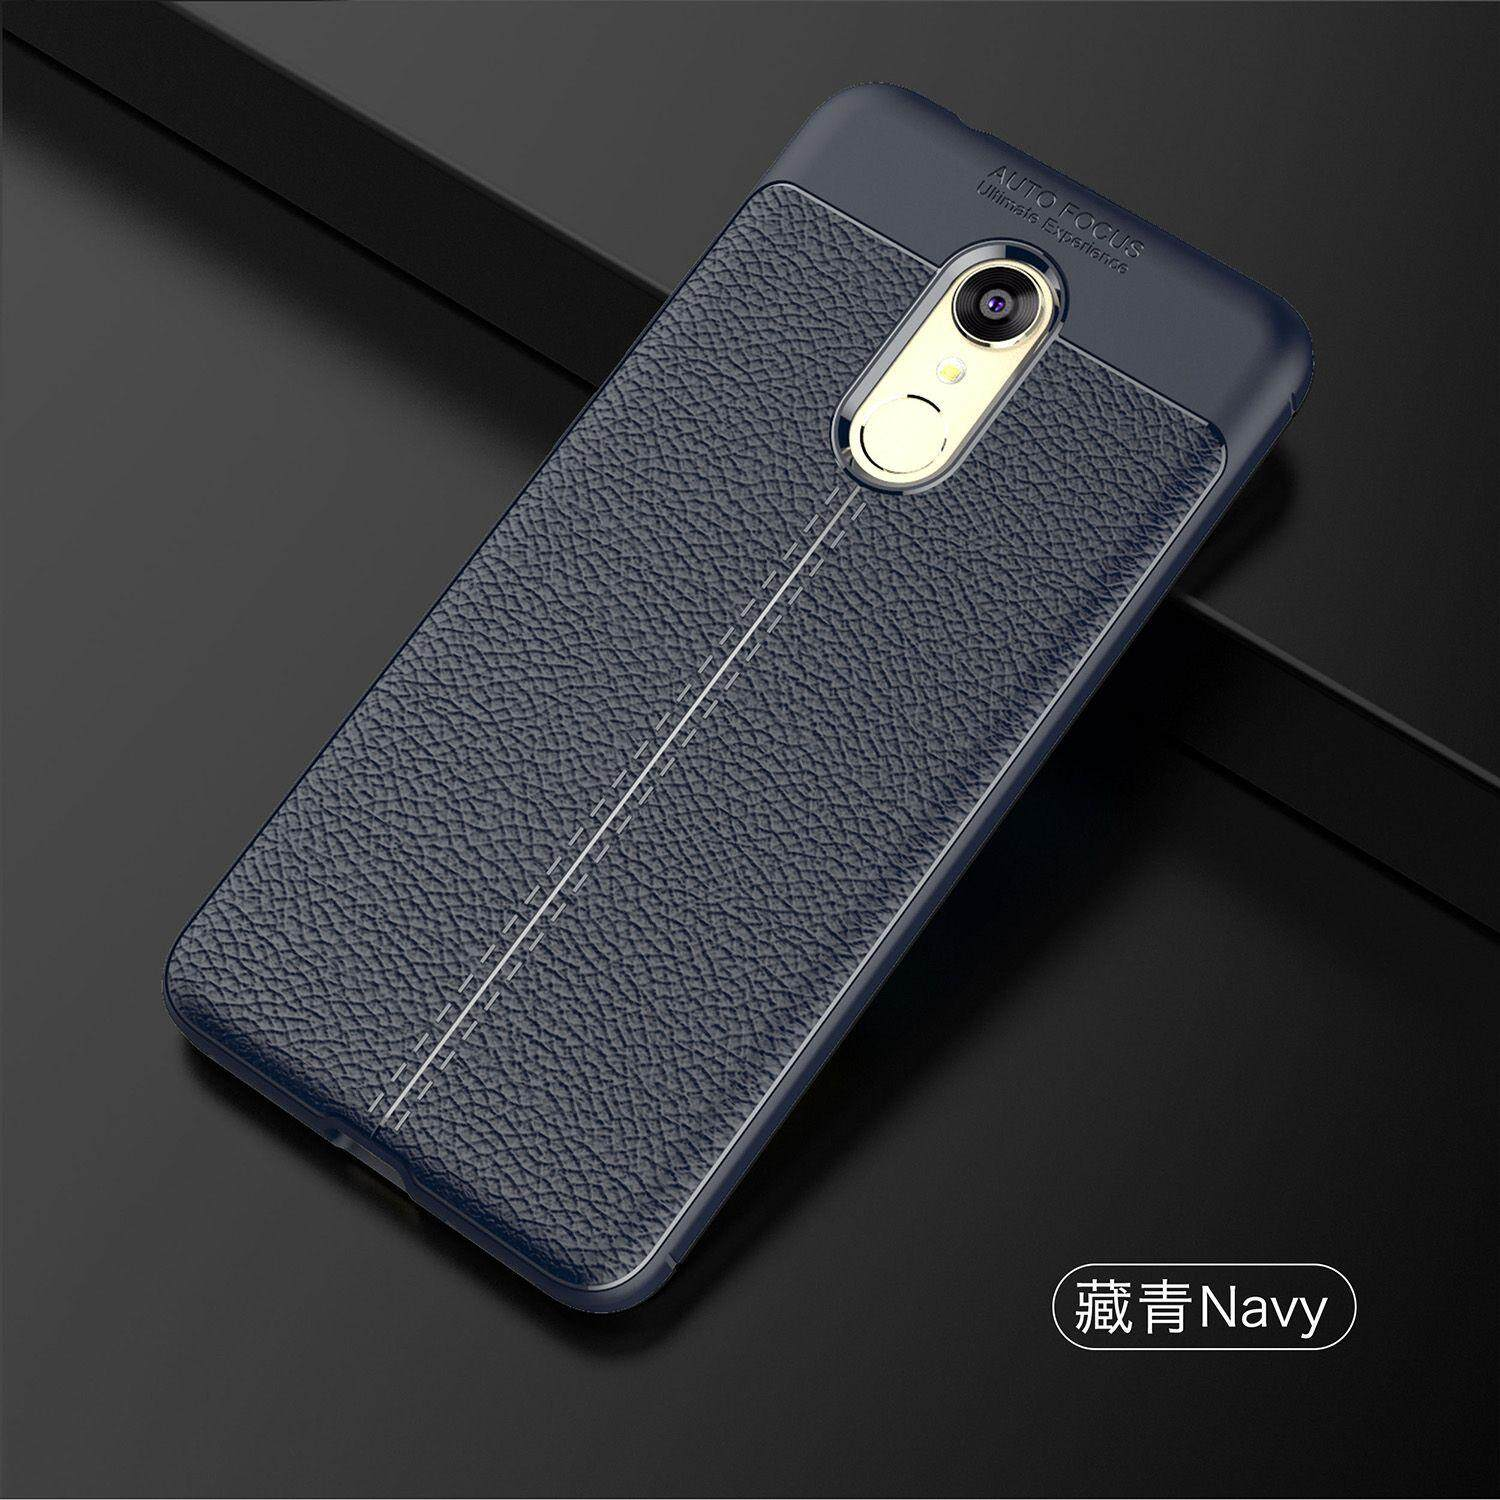 Soft shell lid lychee texture phone case for Xiaomi Redmi 5